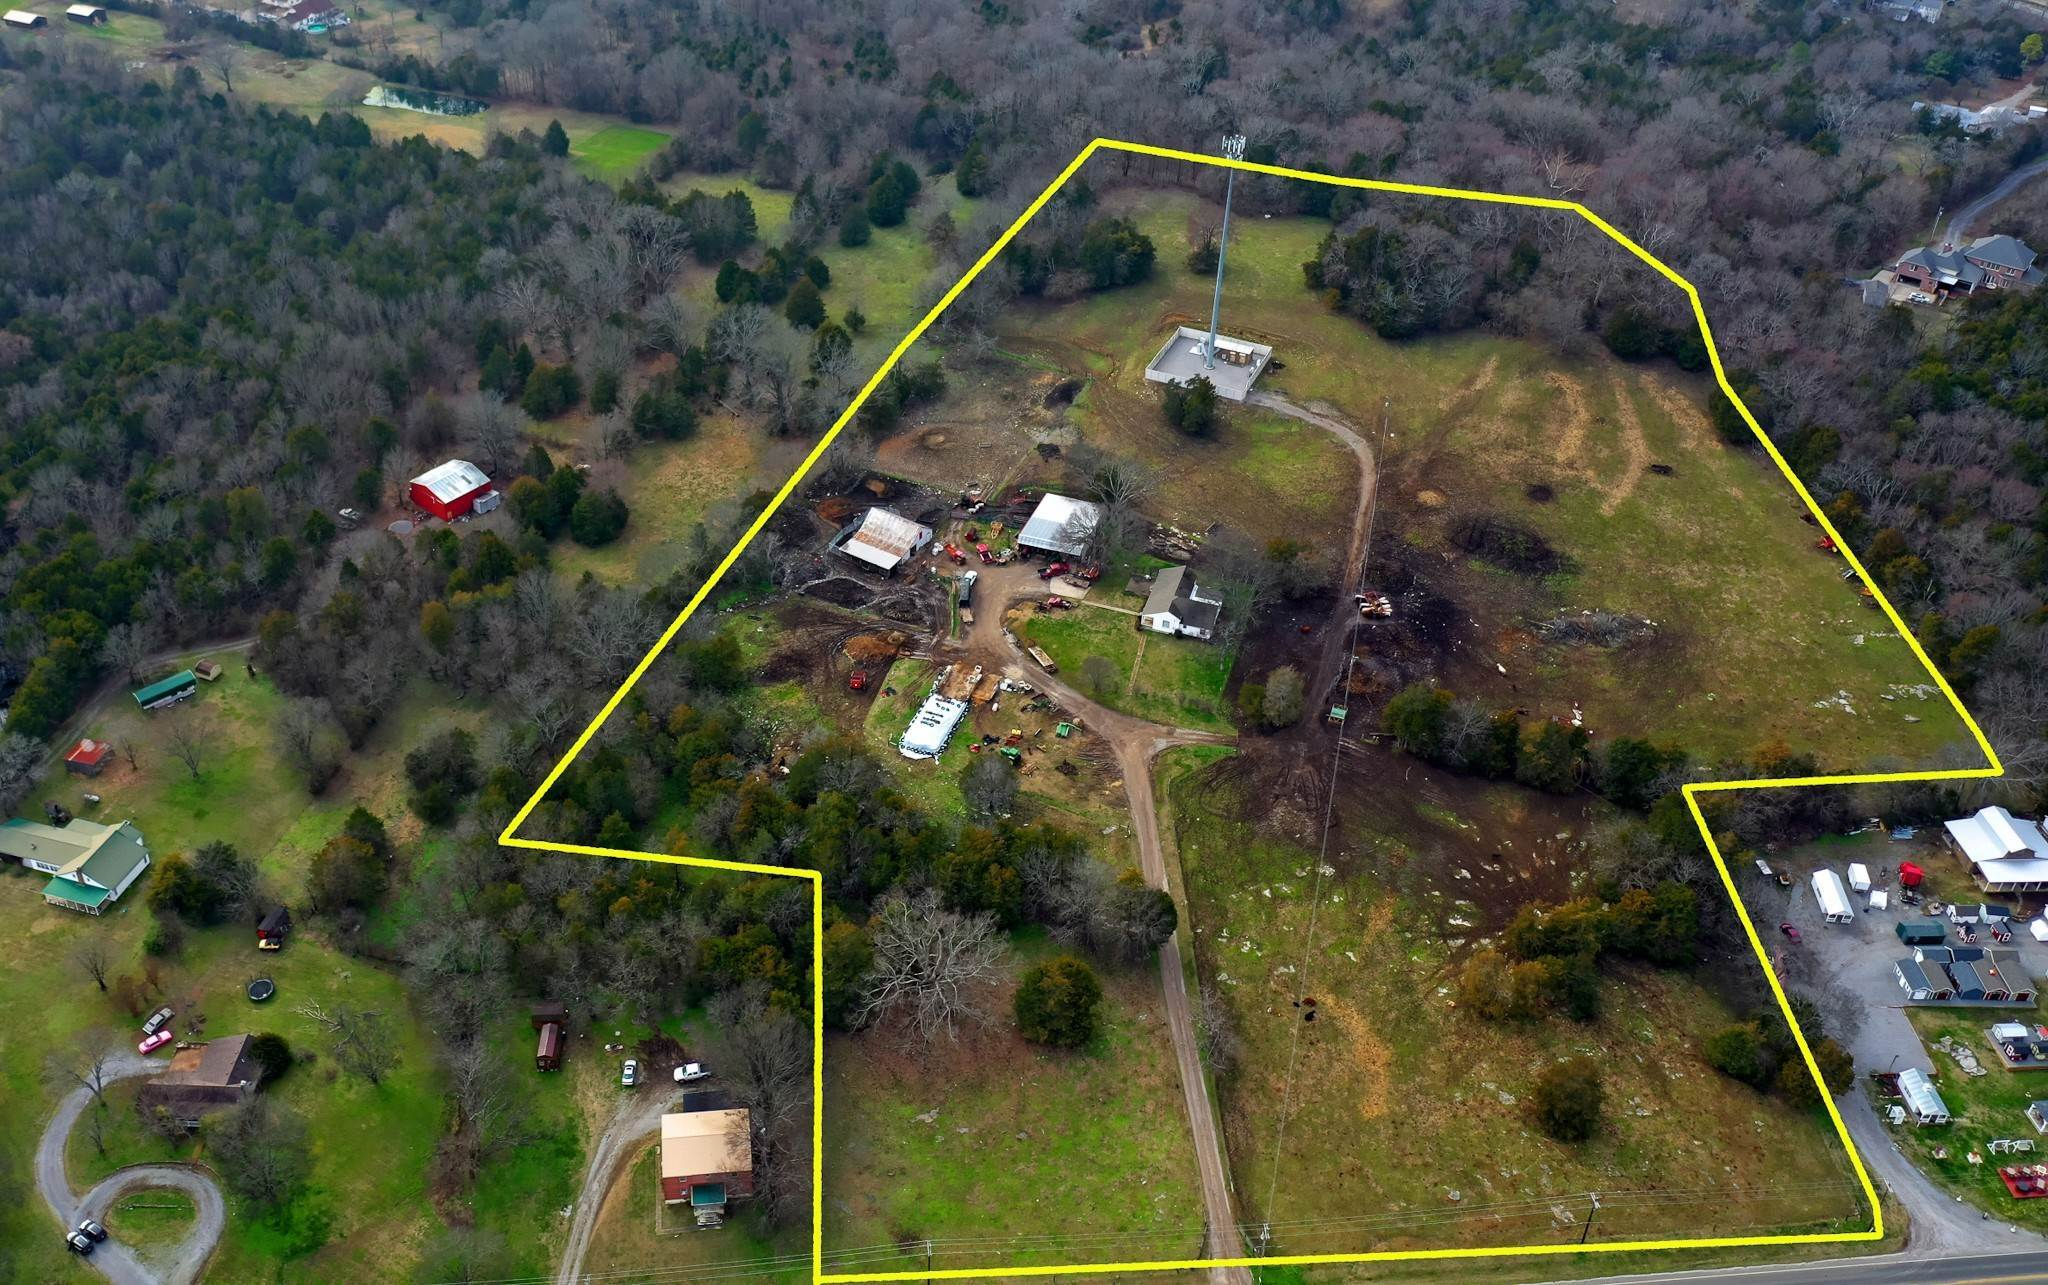 Property for Sale at 7375 Nolensville Road Nolensville, Tennessee 37135 United States